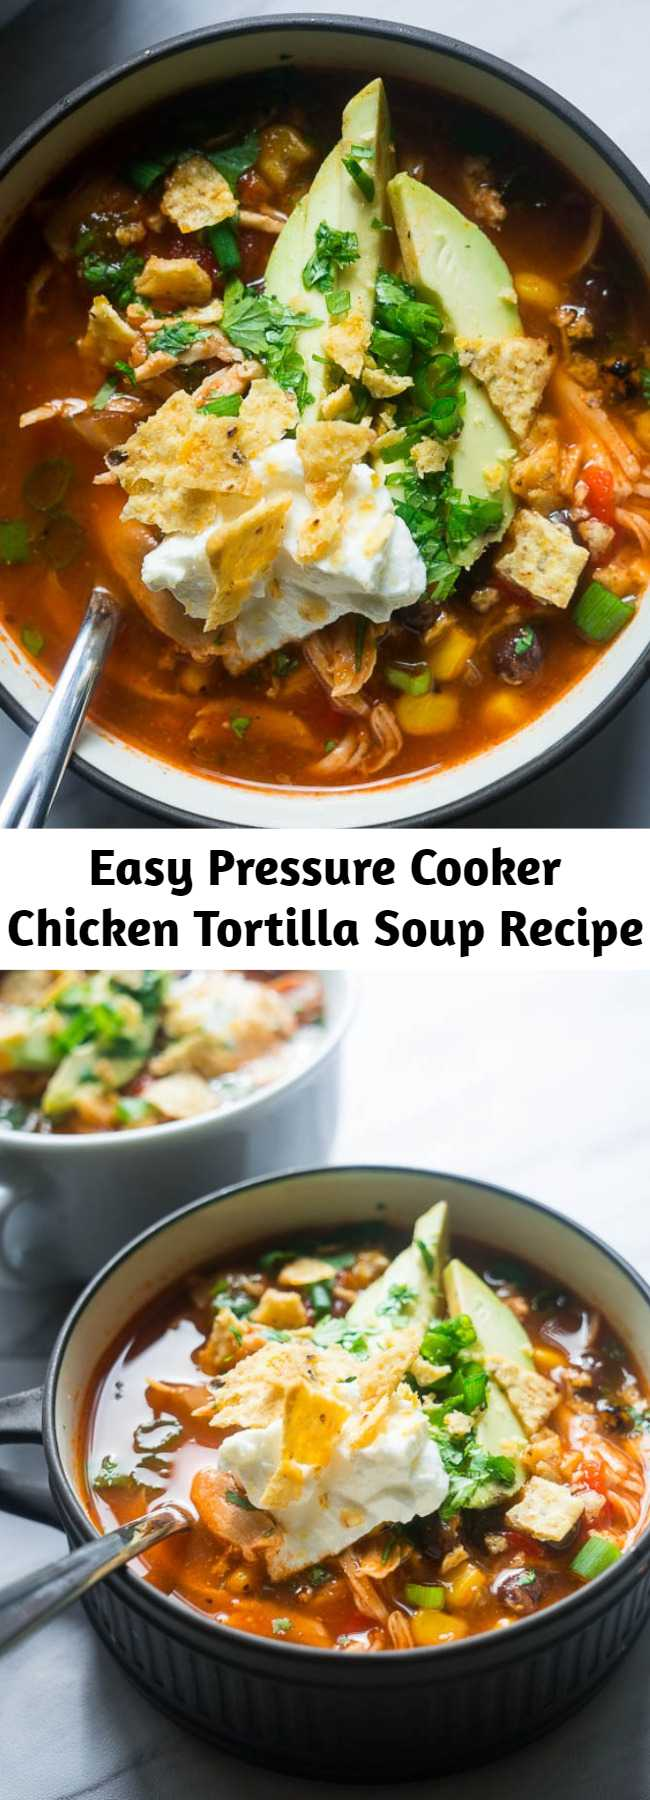 Easy Pressure Cooker Chicken Tortilla Soup Recipe - All in one pot and bursting with flavor, this AhhMazing Pressure Cooker Chicken Tortilla Soup will NOT let you down. If you're overwhelmed by the idea of learning how to use your new pressure cooker, don't be scared!! This is the perfect entry recipe for you and I'm going to venture to say, FOOL-PROOF! You can do it! I have full faith.